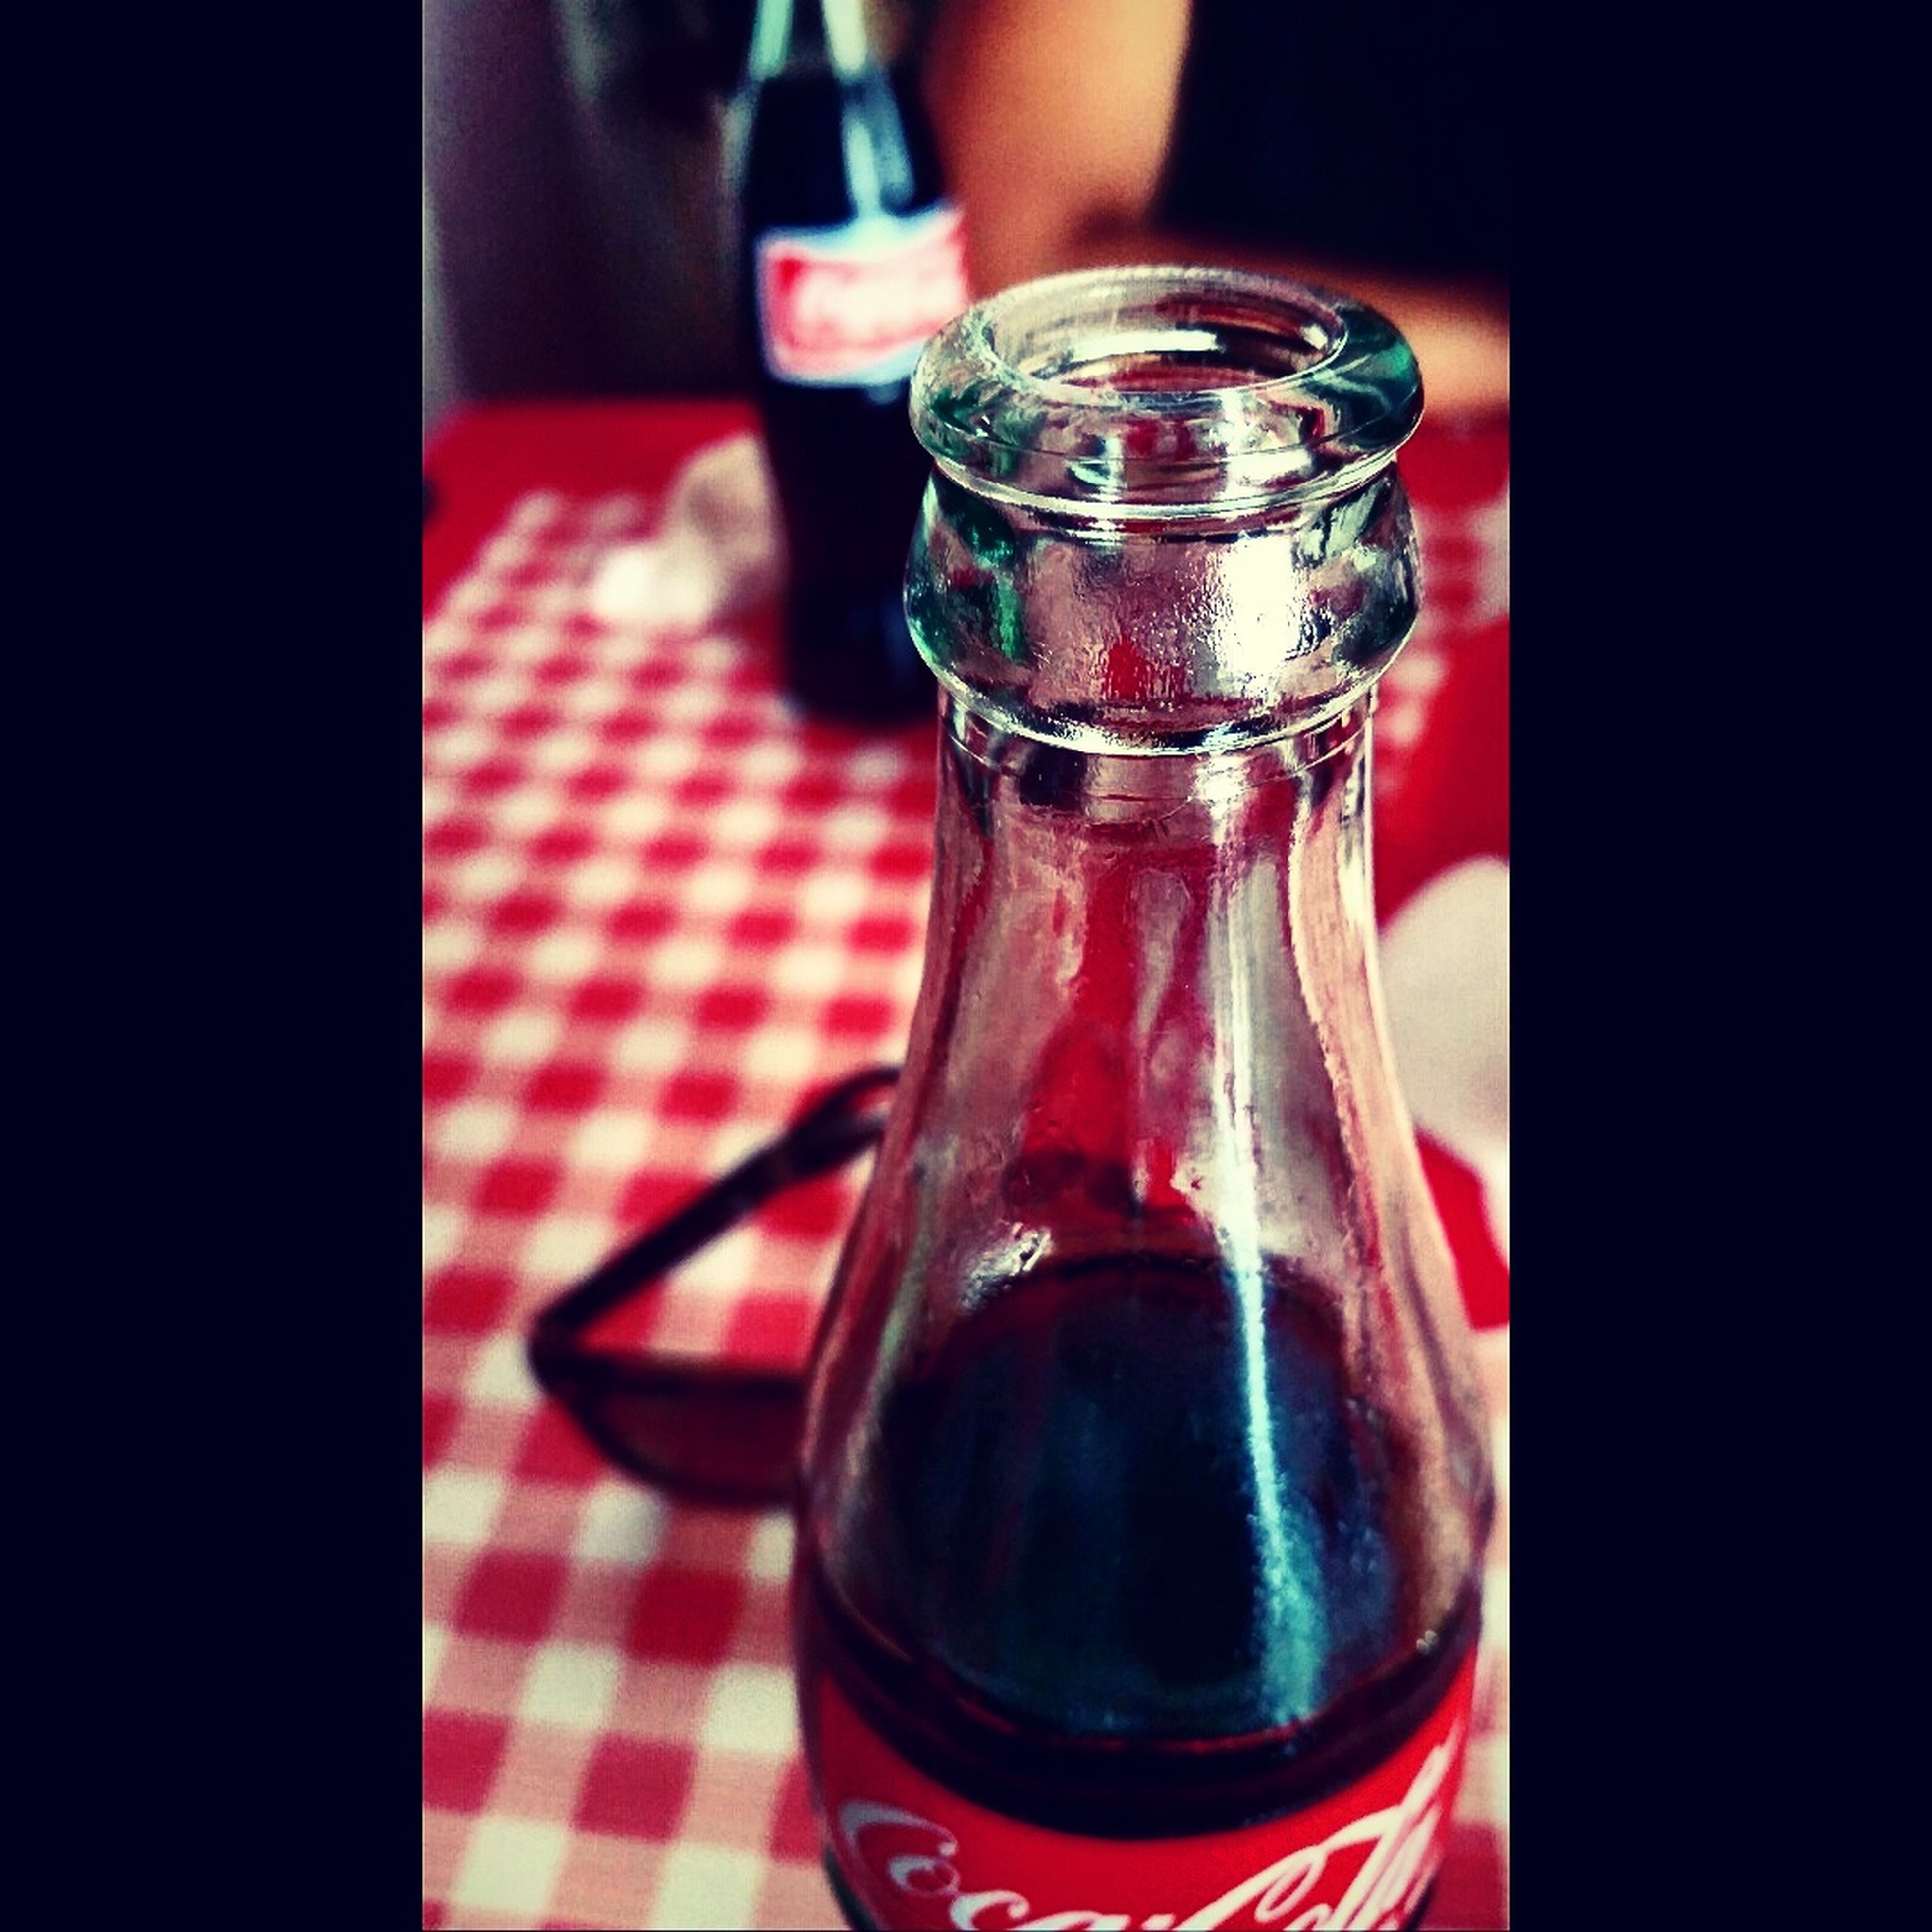 indoors, drink, food and drink, refreshment, drinking glass, table, glass - material, still life, close-up, freshness, glass, red, transparent, wineglass, alcohol, focus on foreground, wine, bottle, drinking straw, beverage